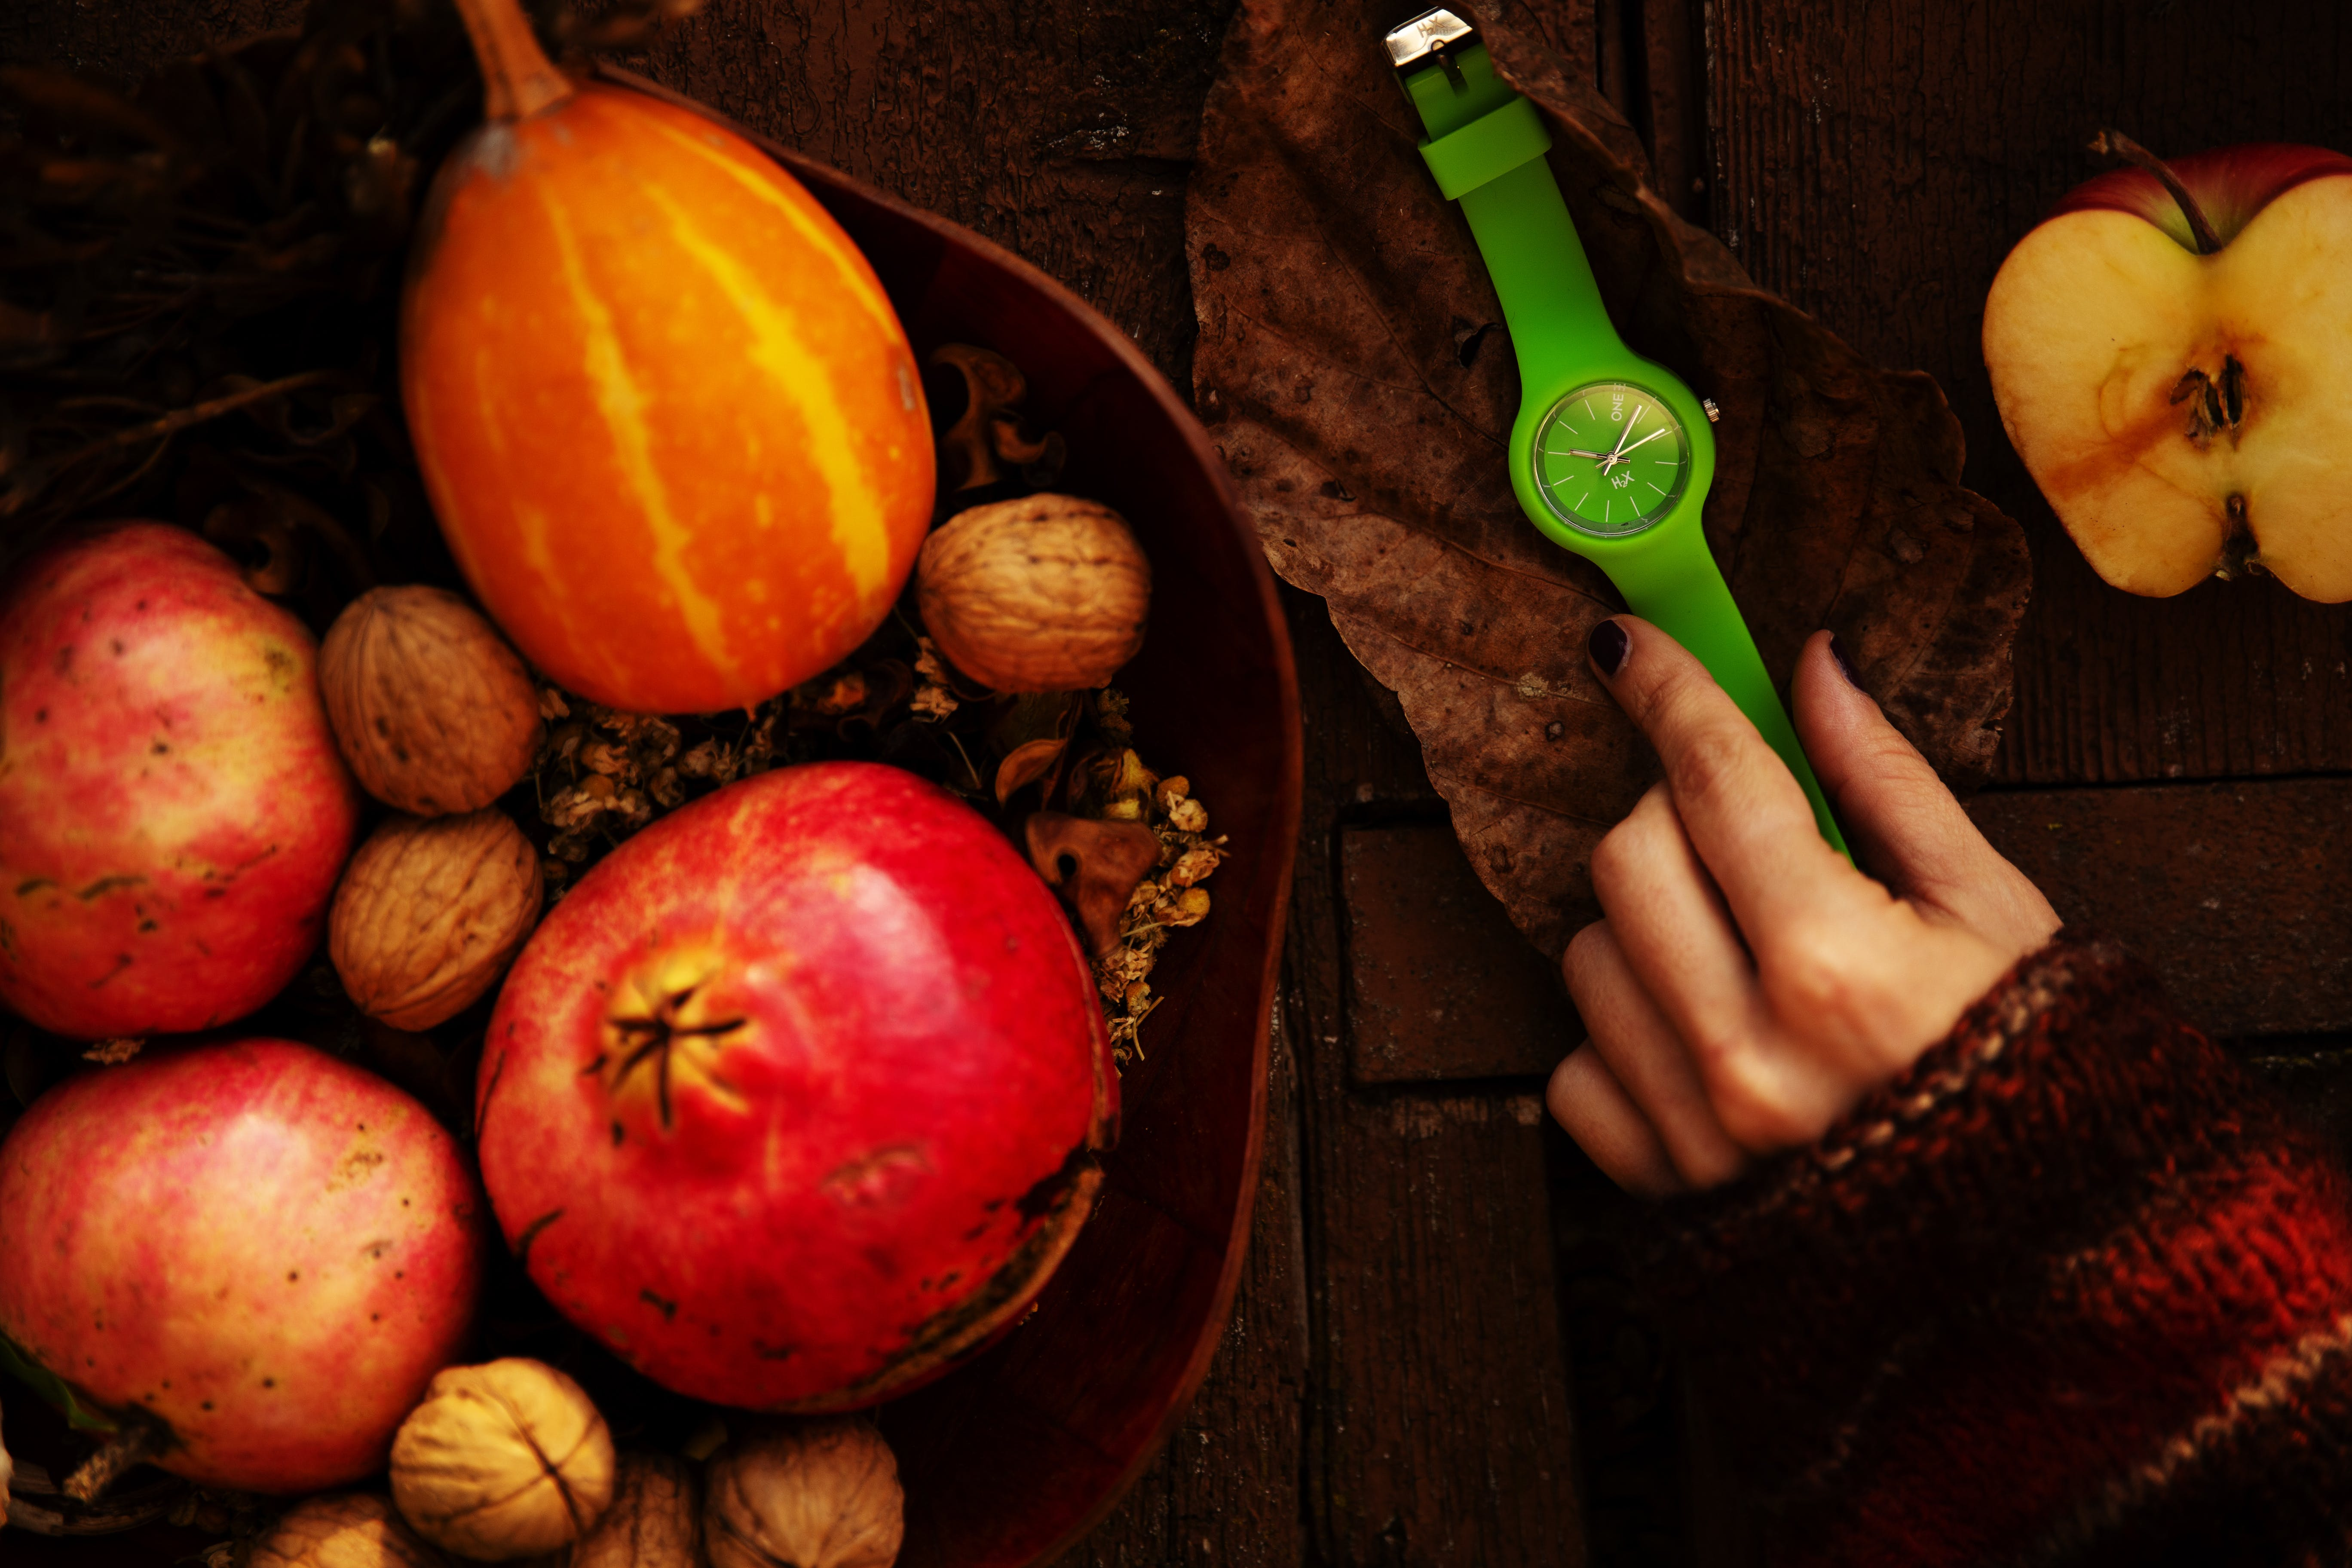 Person Touching Green Analog Watch Between Sliced Apple and Fruit Basket